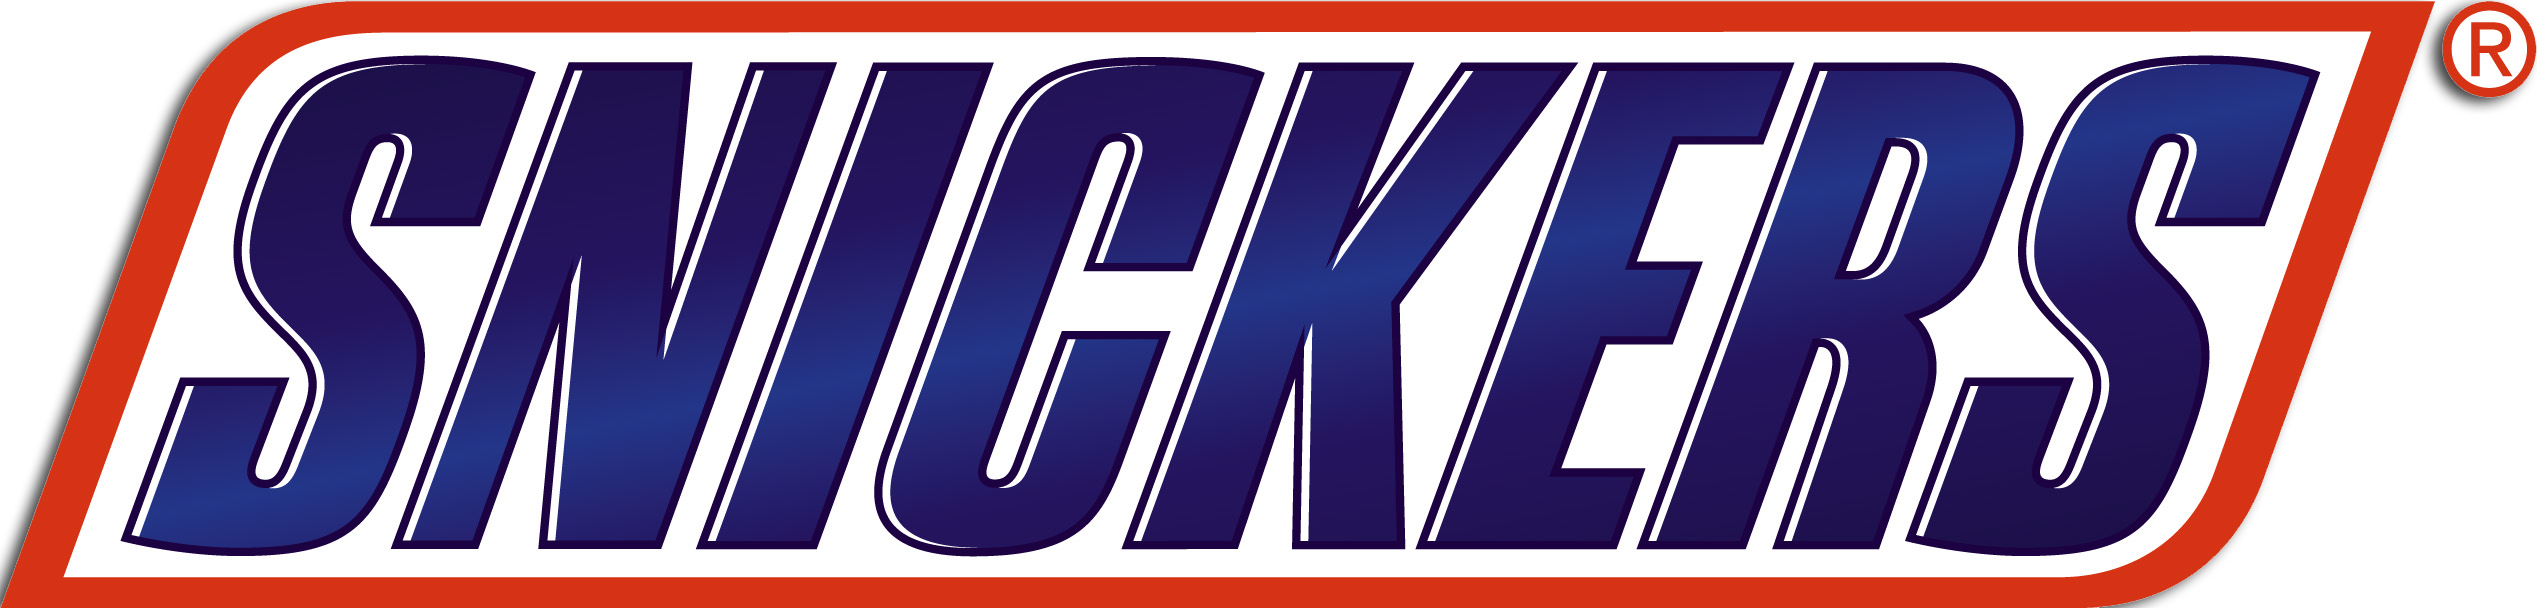 Snickers PNG images free download.